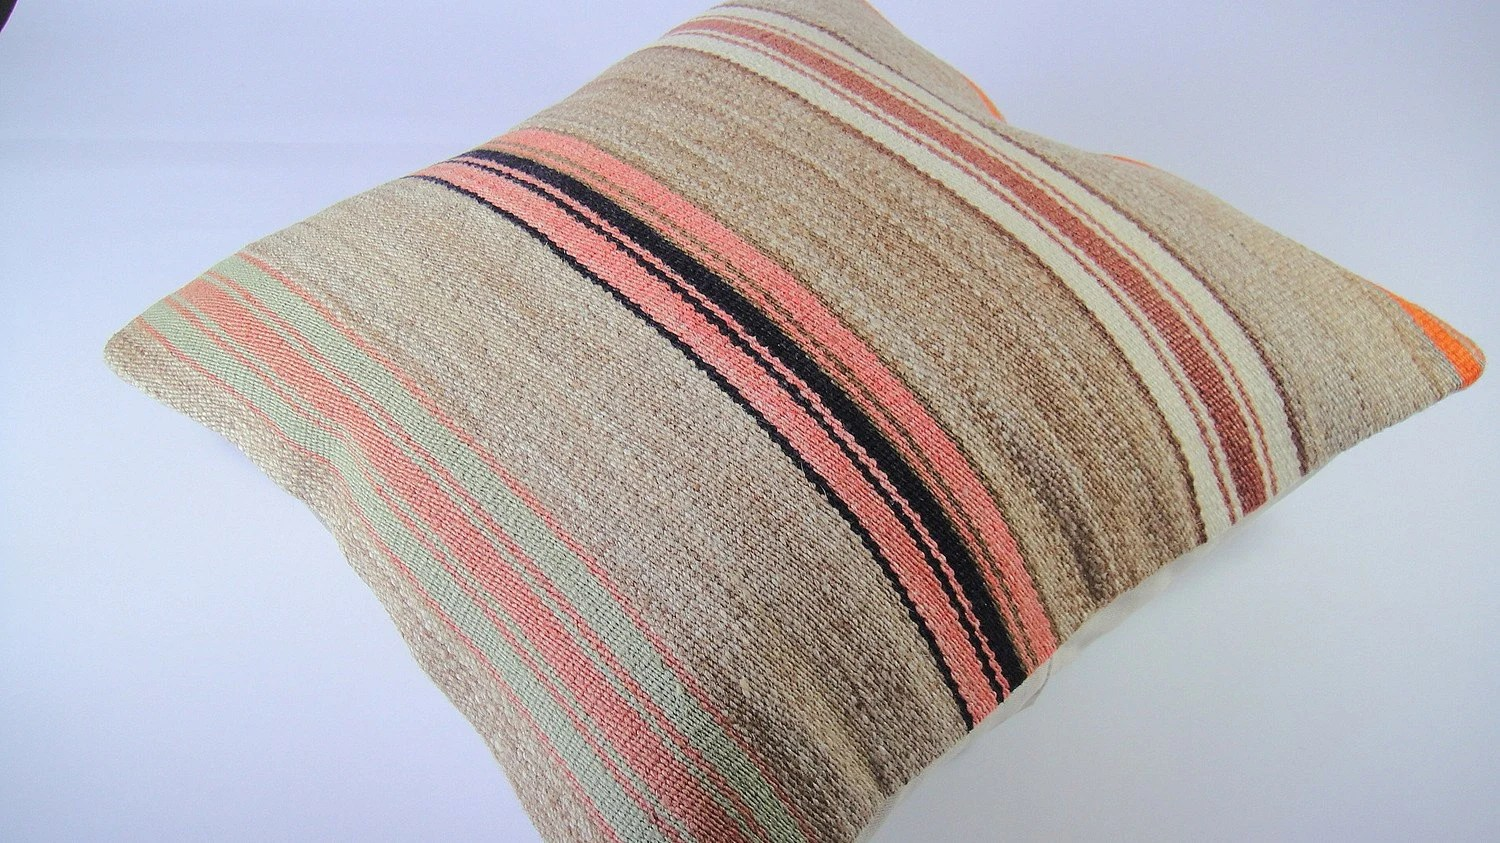 Antique Turkish Kilim Pillow Cover - Hand Embroidered - 16x16 inch